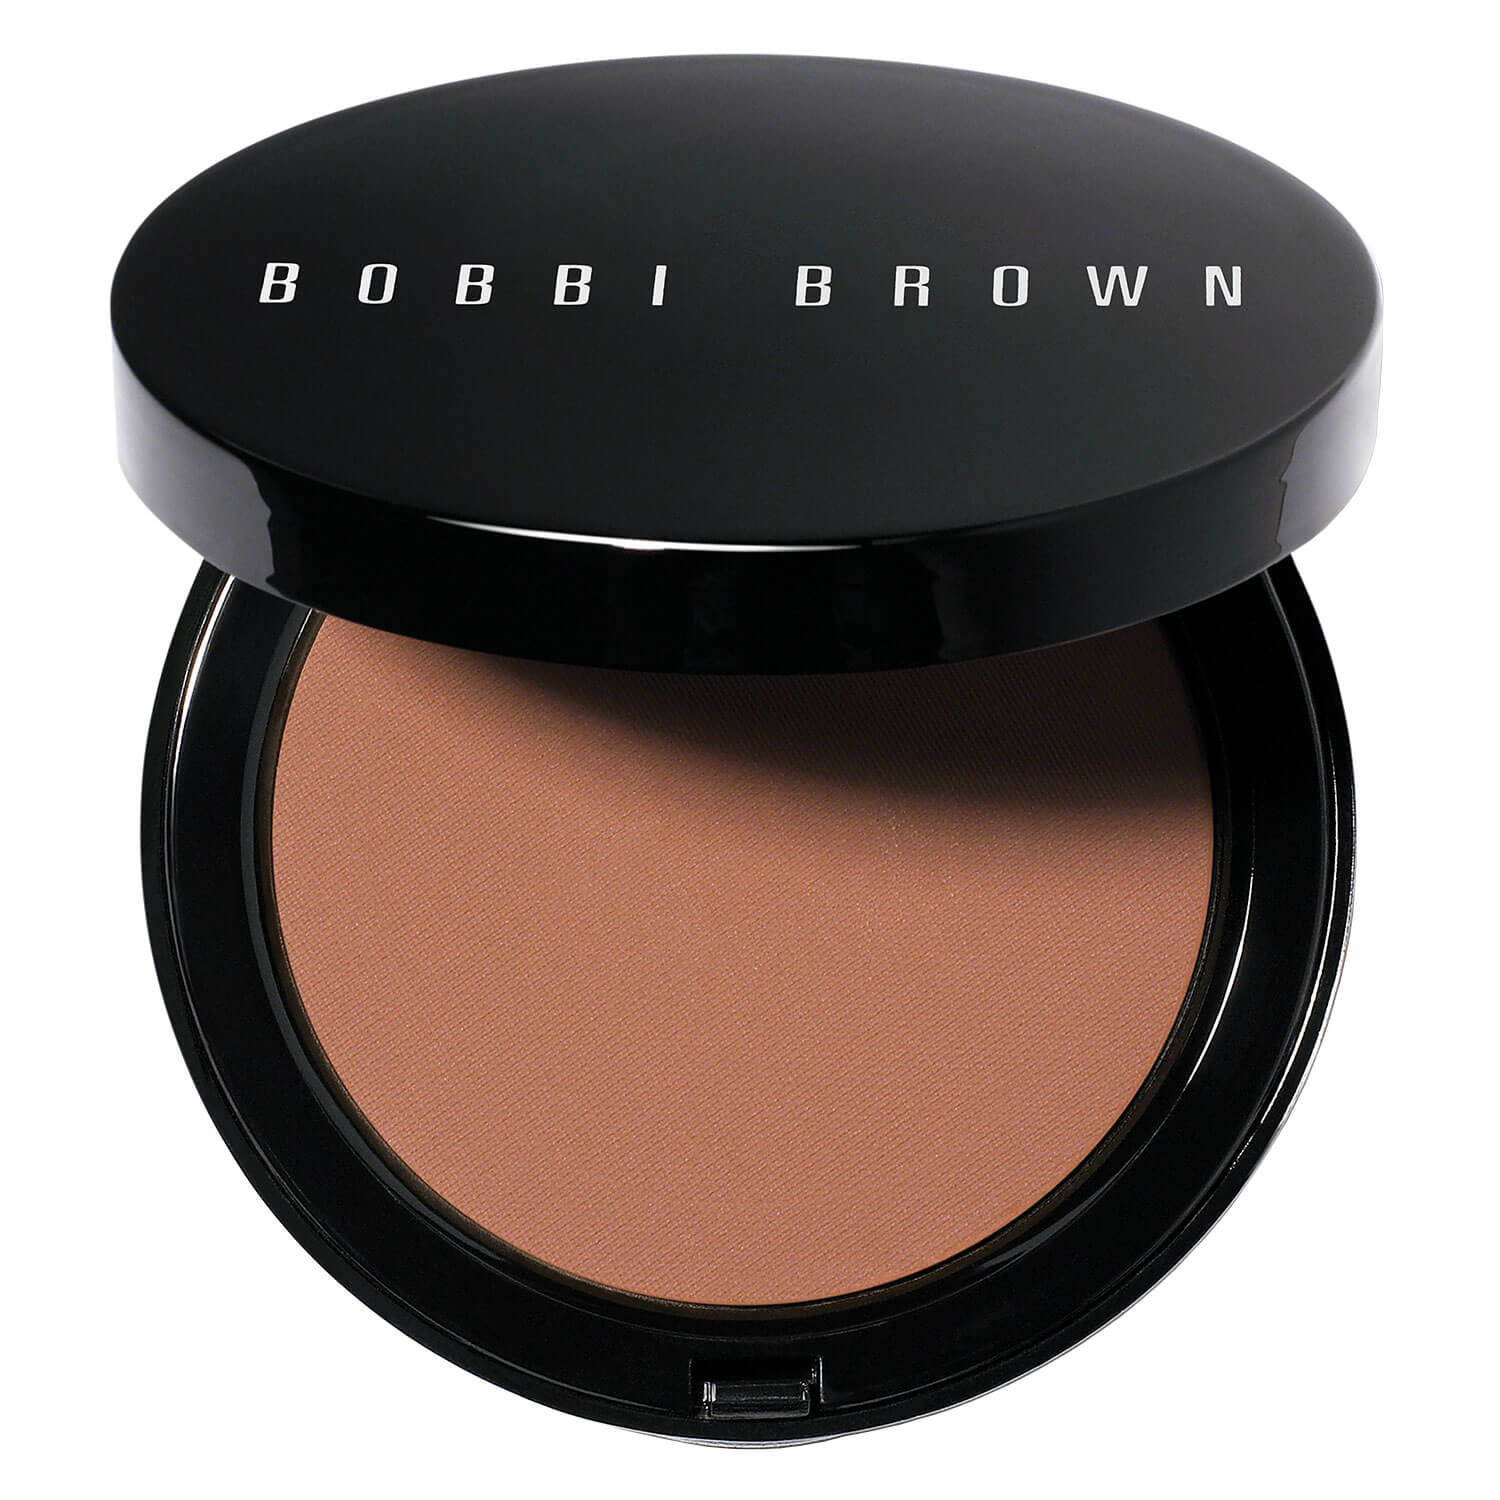 BB Bronzer - Bronzing Powder Dark